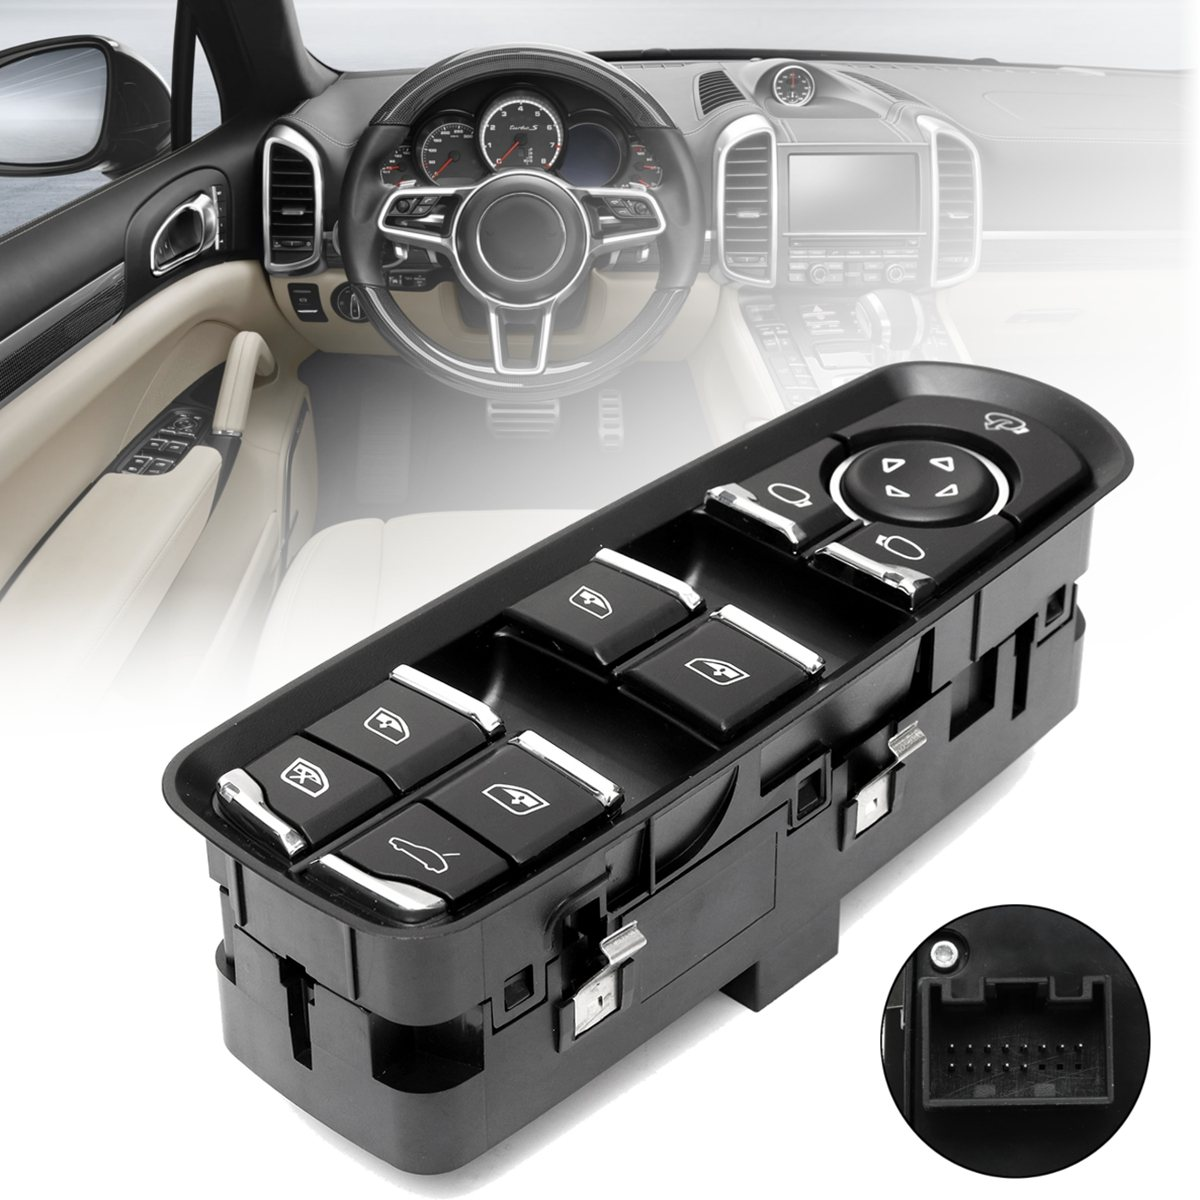 #7PP959858AEDML Front Left ABS Driver Side Electric Power Window Switch For Porsche/Panamera Cayenne Macan 2010 2011 2012 2013 acdelco 11p39 professional front driver side power window switch